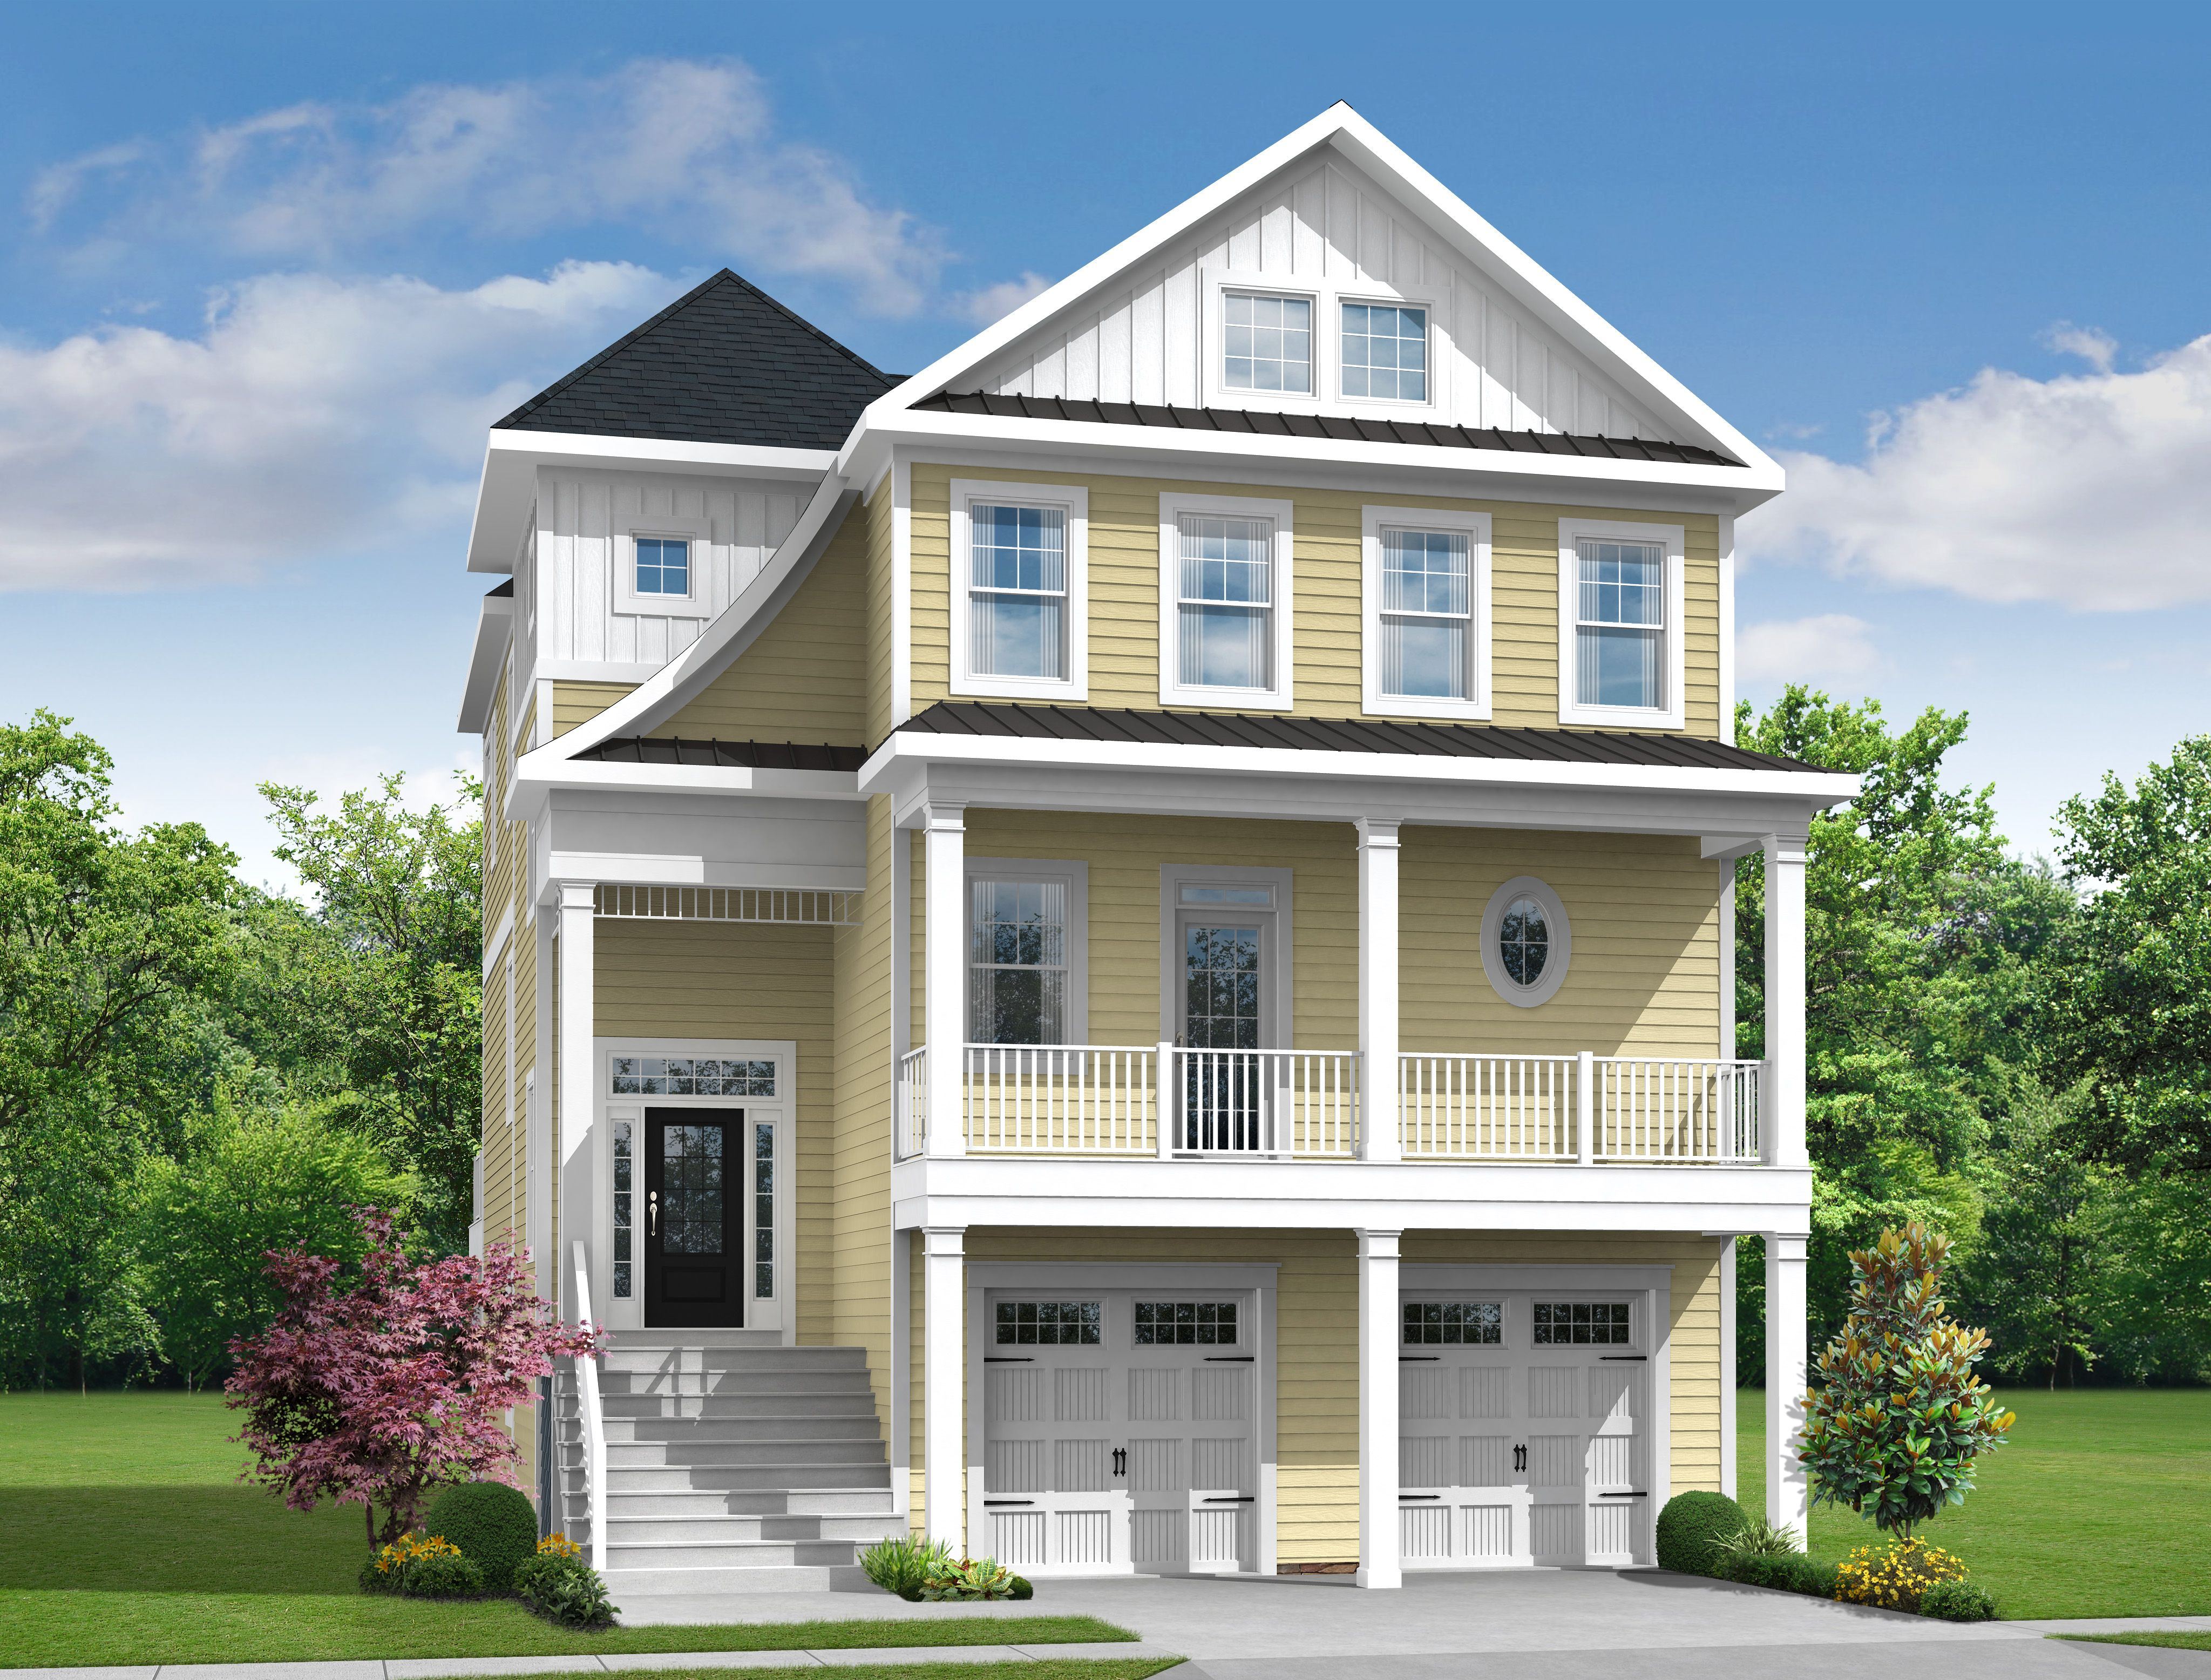 Single Family for Active at Bayside - The Catalina 20811 Harbor Cove Selbyville, Delaware 19975 United States